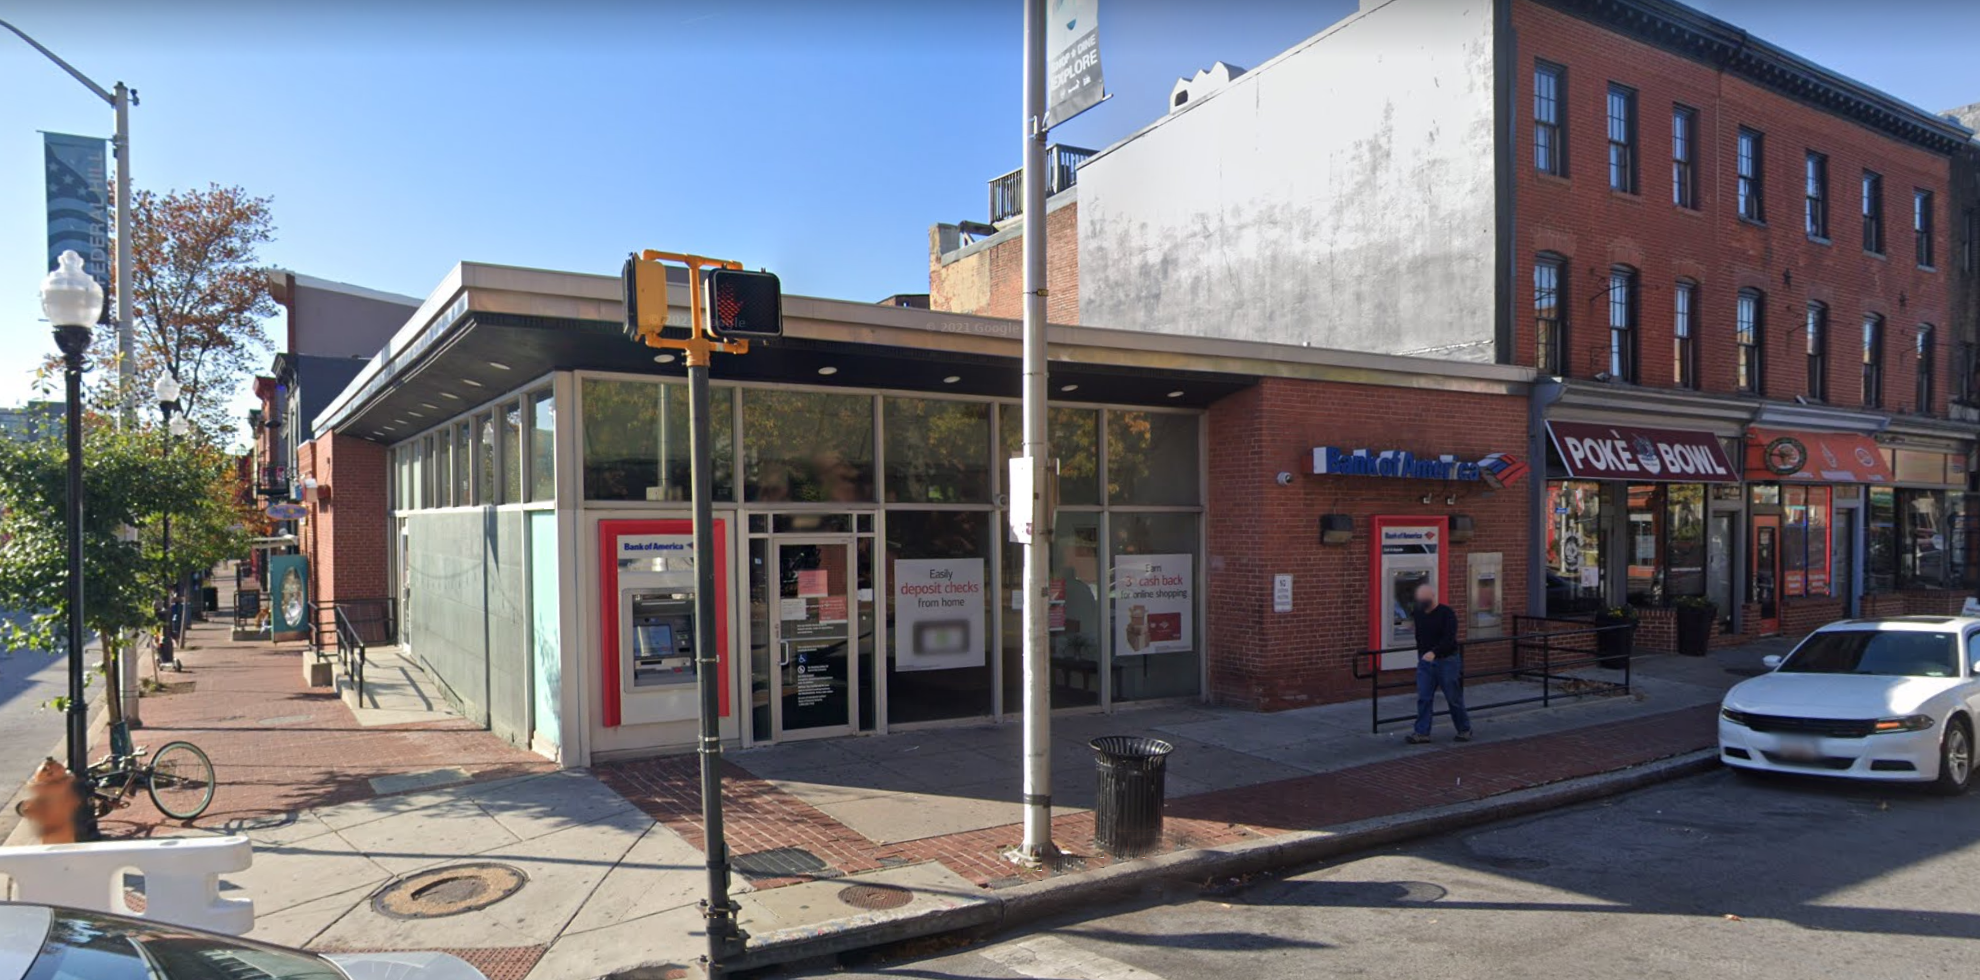 Bank of America financial center with walk-up ATM   1046 Light St, Baltimore, MD 21230